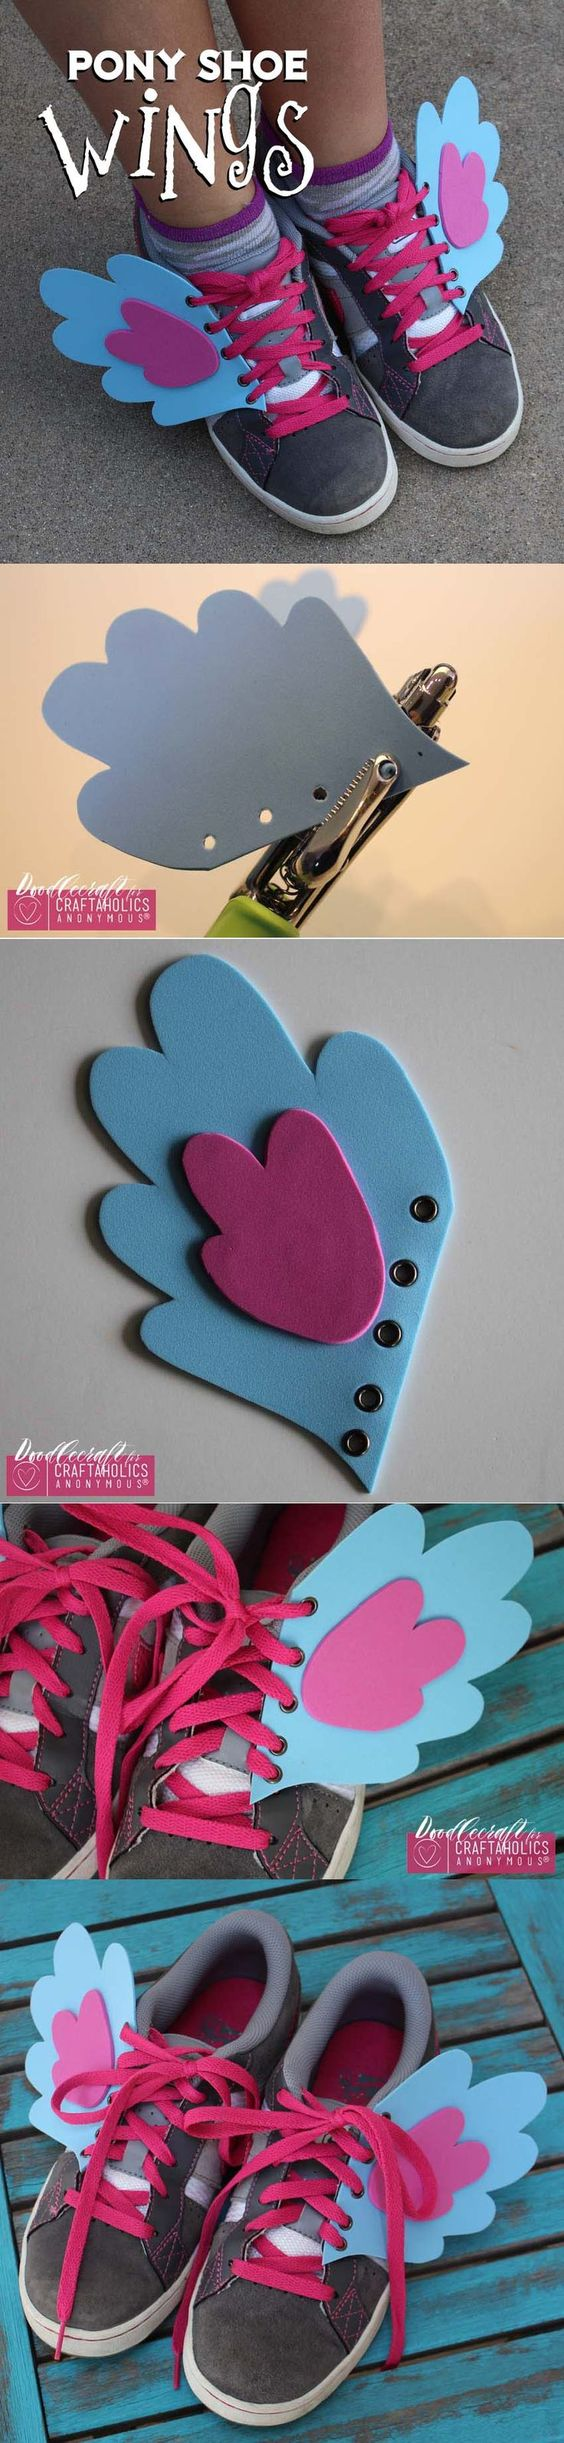 My Little Pony Shoe Wings! Add some fun personality and style to your kicks with these awesome DIY Shoe wings! |www.CraftaholicsAnonymous.net